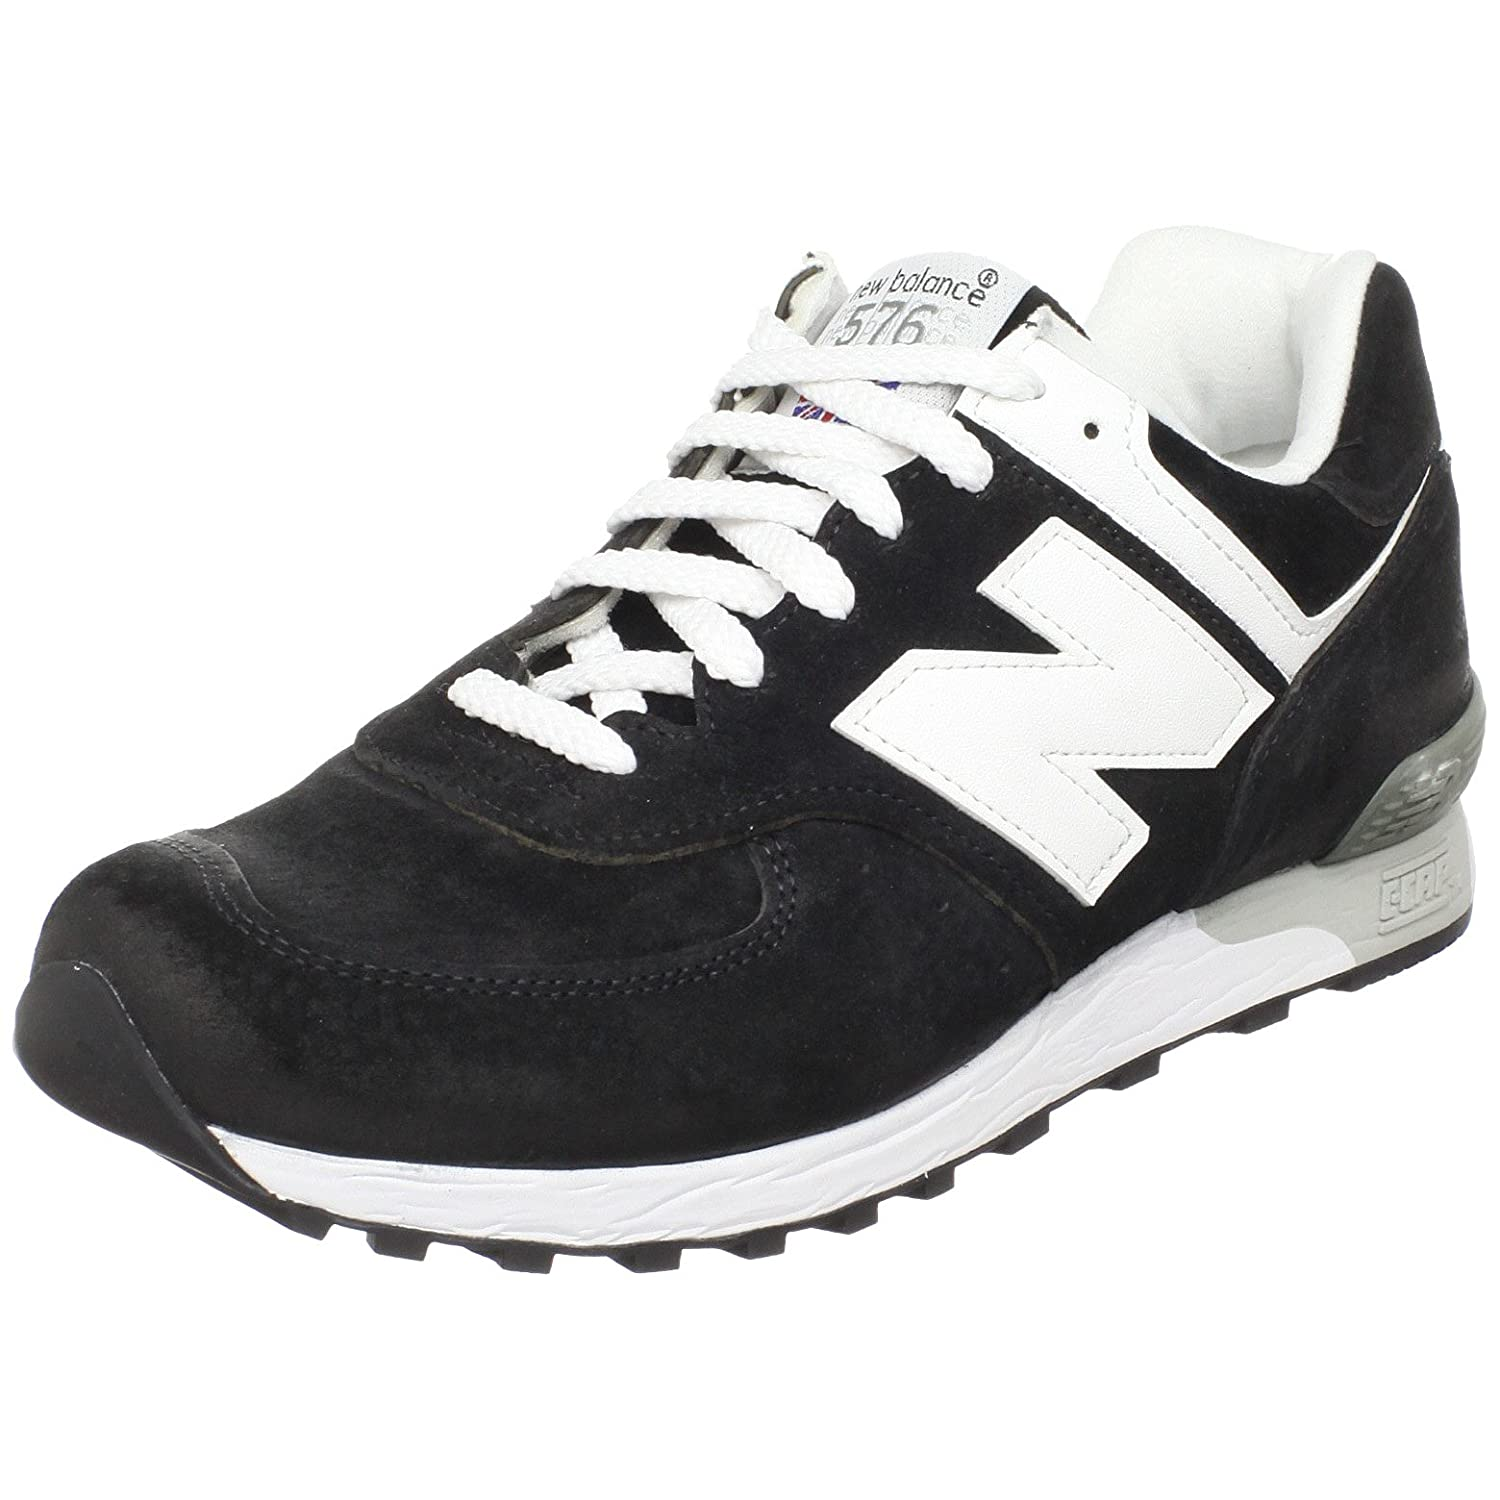 reputable site 2bacd a8195 New Balance 576 Women's Real Leather Sneaker Black W576KGS ...